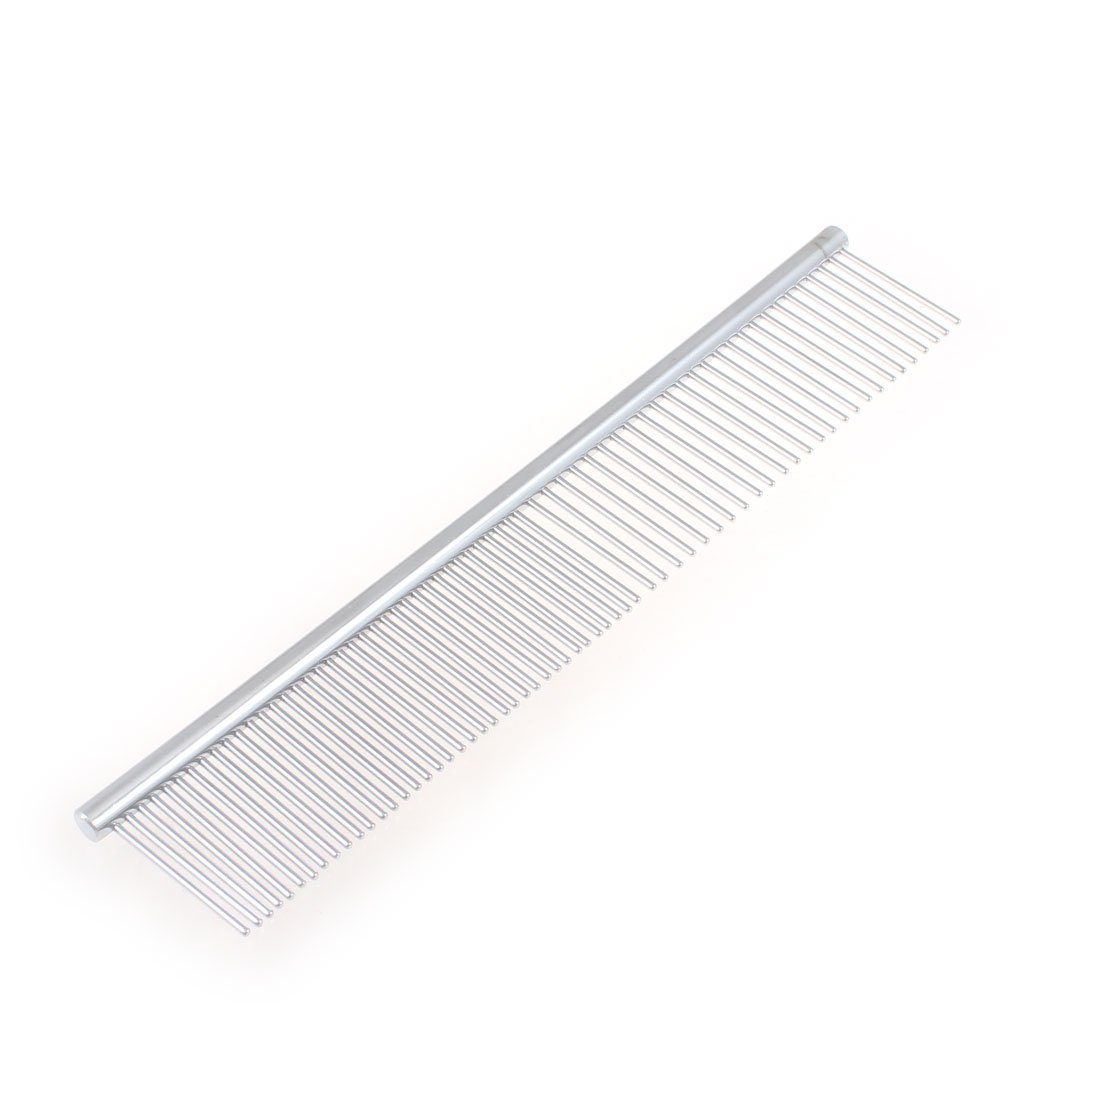 Uxcell Pet Beauty Tool Metal Grooming Rake Comb, Silver Tone a13040900ux0045